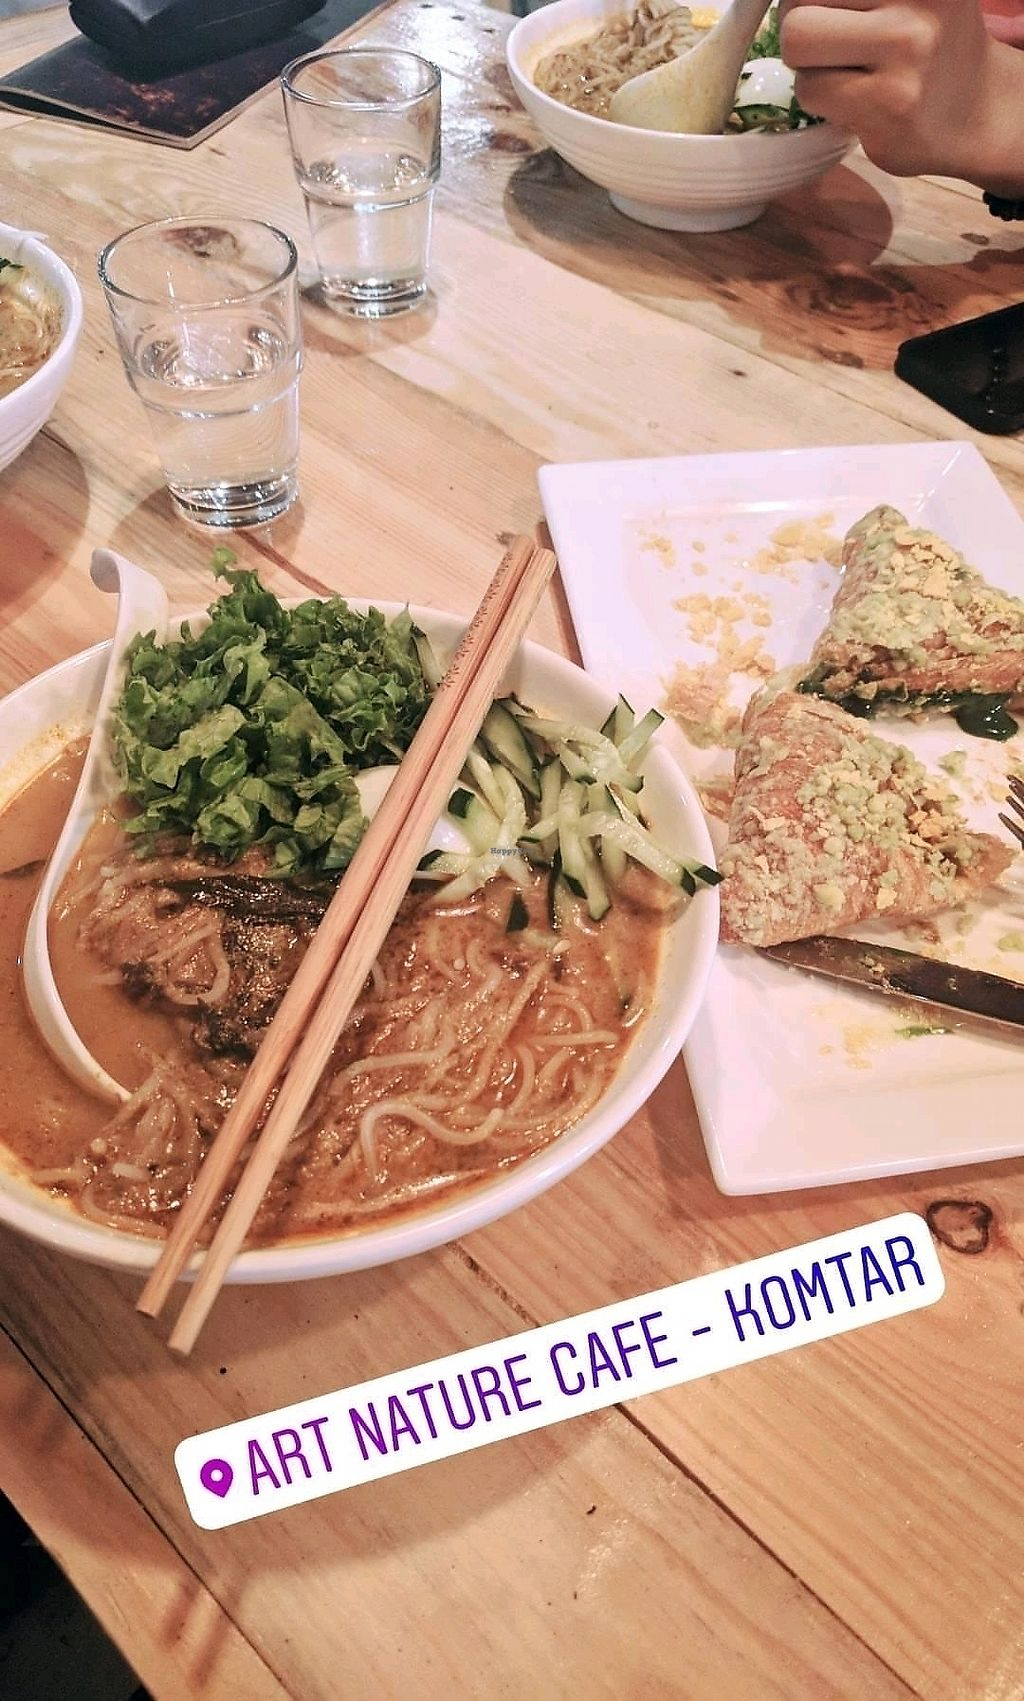 """Photo of Art Nature Cafe  by <a href=""""/members/profile/sariebeary"""">sariebeary</a> <br/>laksa and matcha croissant (too sweet) <br/> February 3, 2018  - <a href='/contact/abuse/image/101214/354425'>Report</a>"""